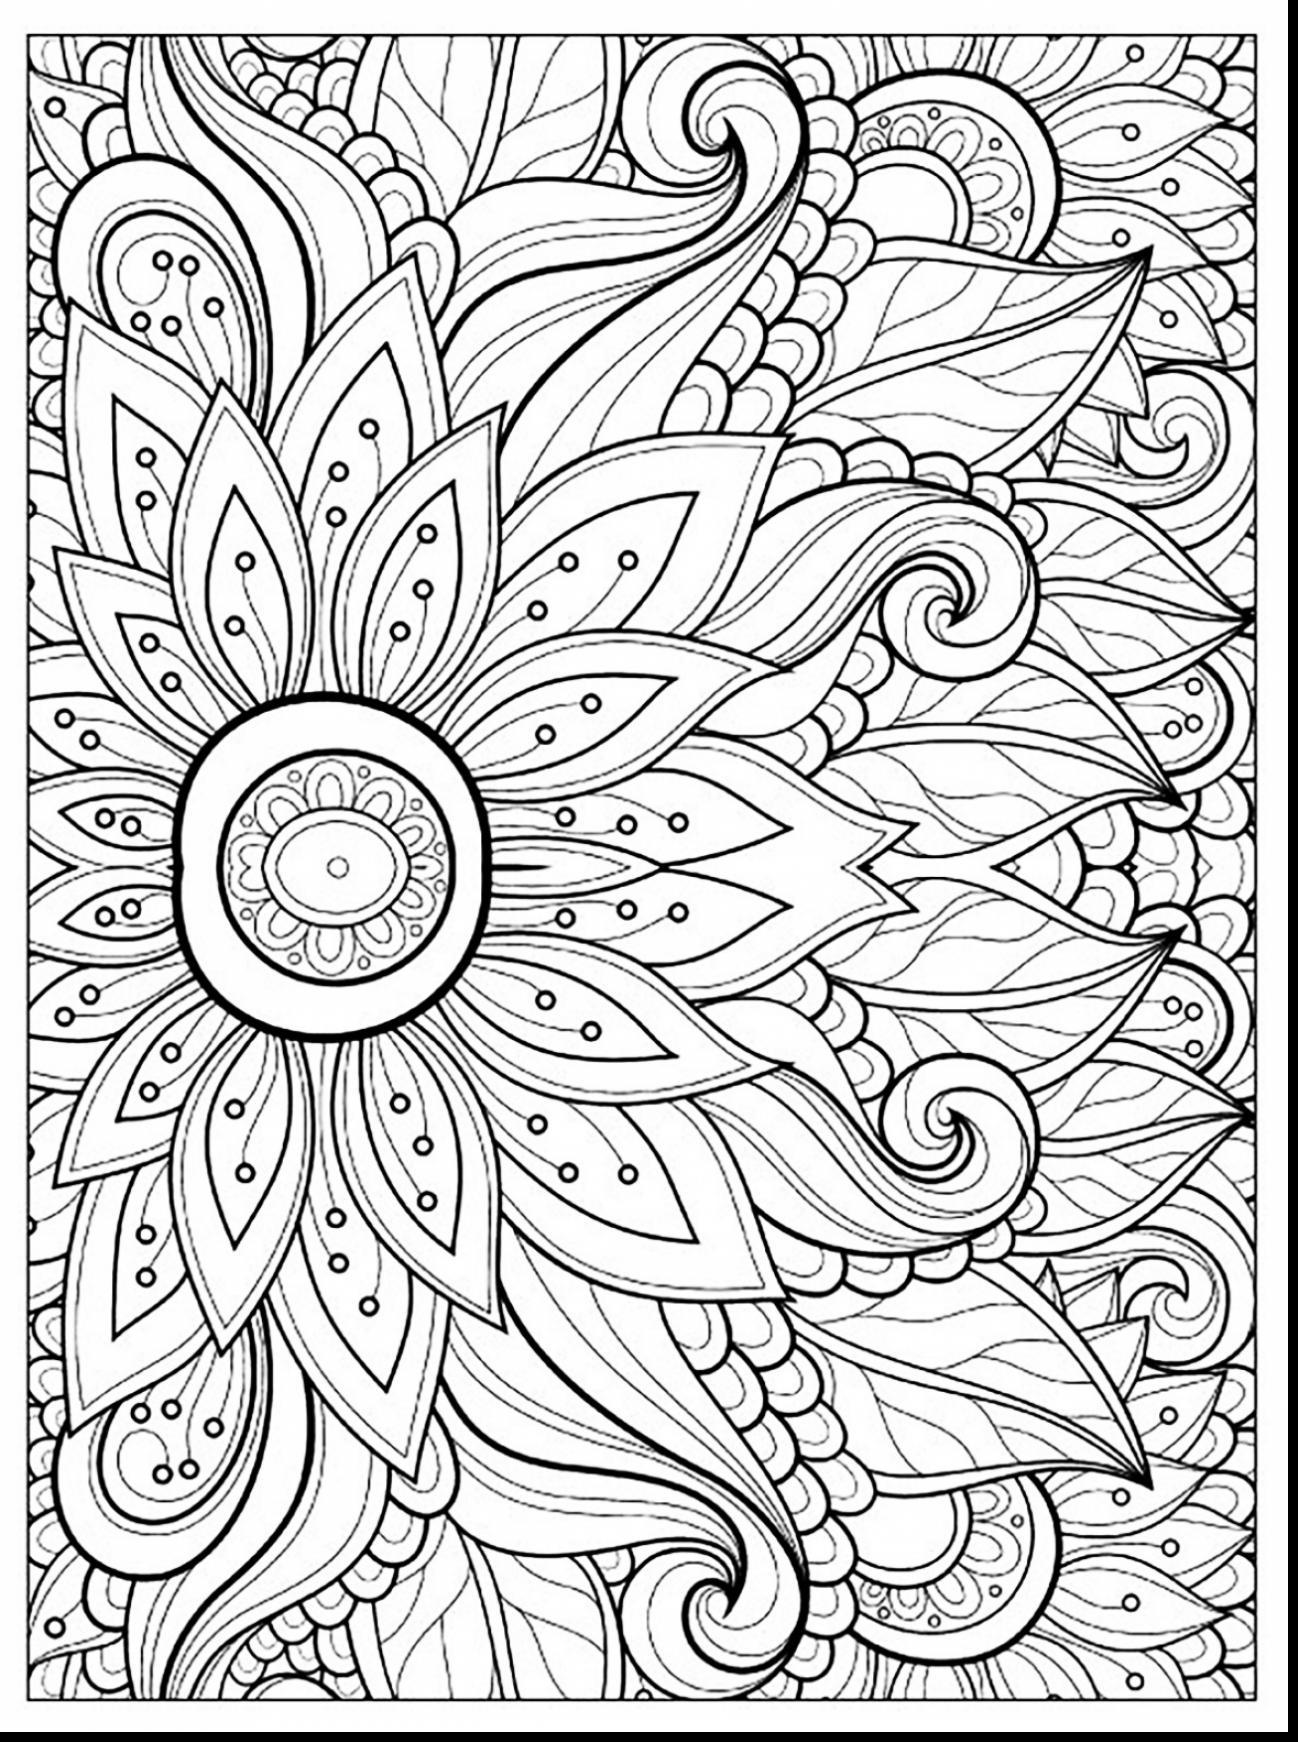 1298x1742 Marvelous Printable Coloring Pages Colouring Pict For Spring Trend